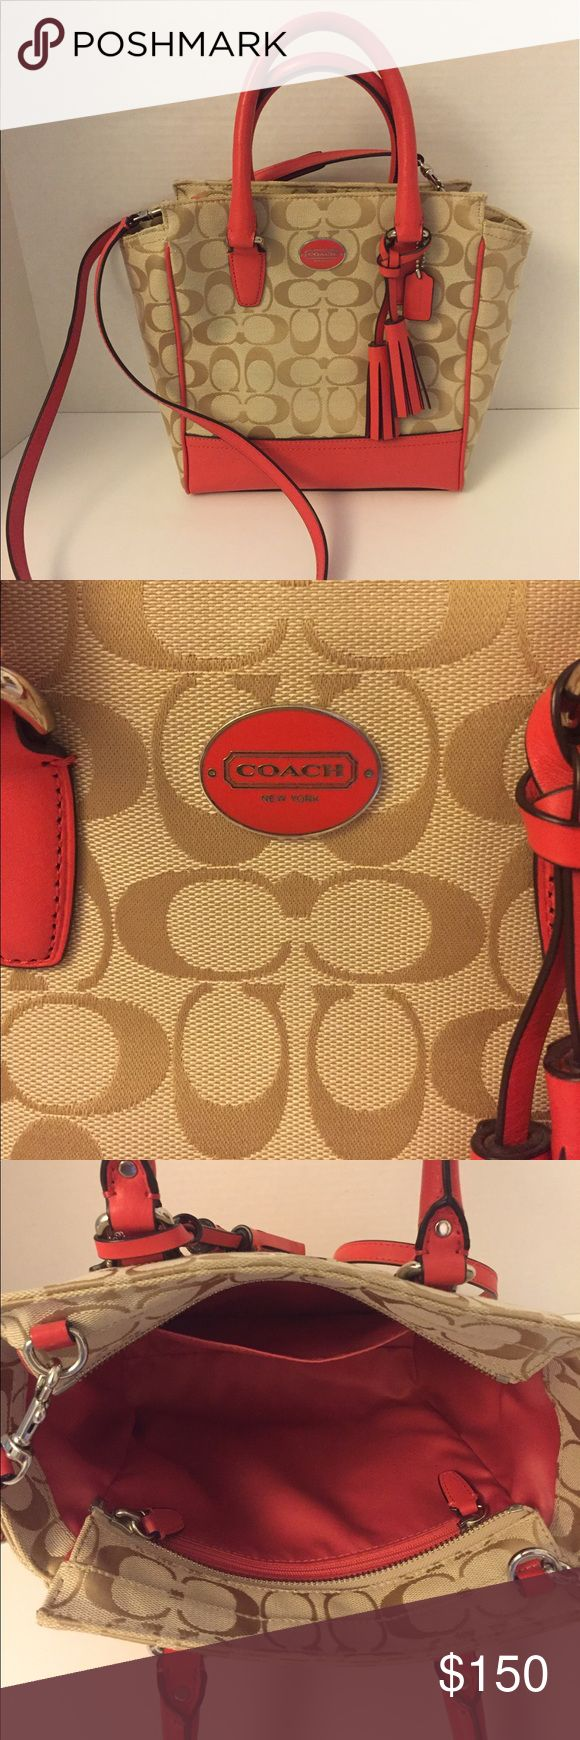 "Coach Legacy Mini Tanner with Signature Pattern Gently Used.  Coach Legacy Mini Tanner Purse.  Approx 9.5""W x 8.25""H x 3.5""D. 4"" dual handle drop. Optional shoulder strap drop 23"". Zip top closure. Interior zip pocket. Exterior rear zip pocket. Twill lining. Tassel and logo charm detail.  Comes from a Smoke Free/Pet Free Home. Coach Bags Satchels"